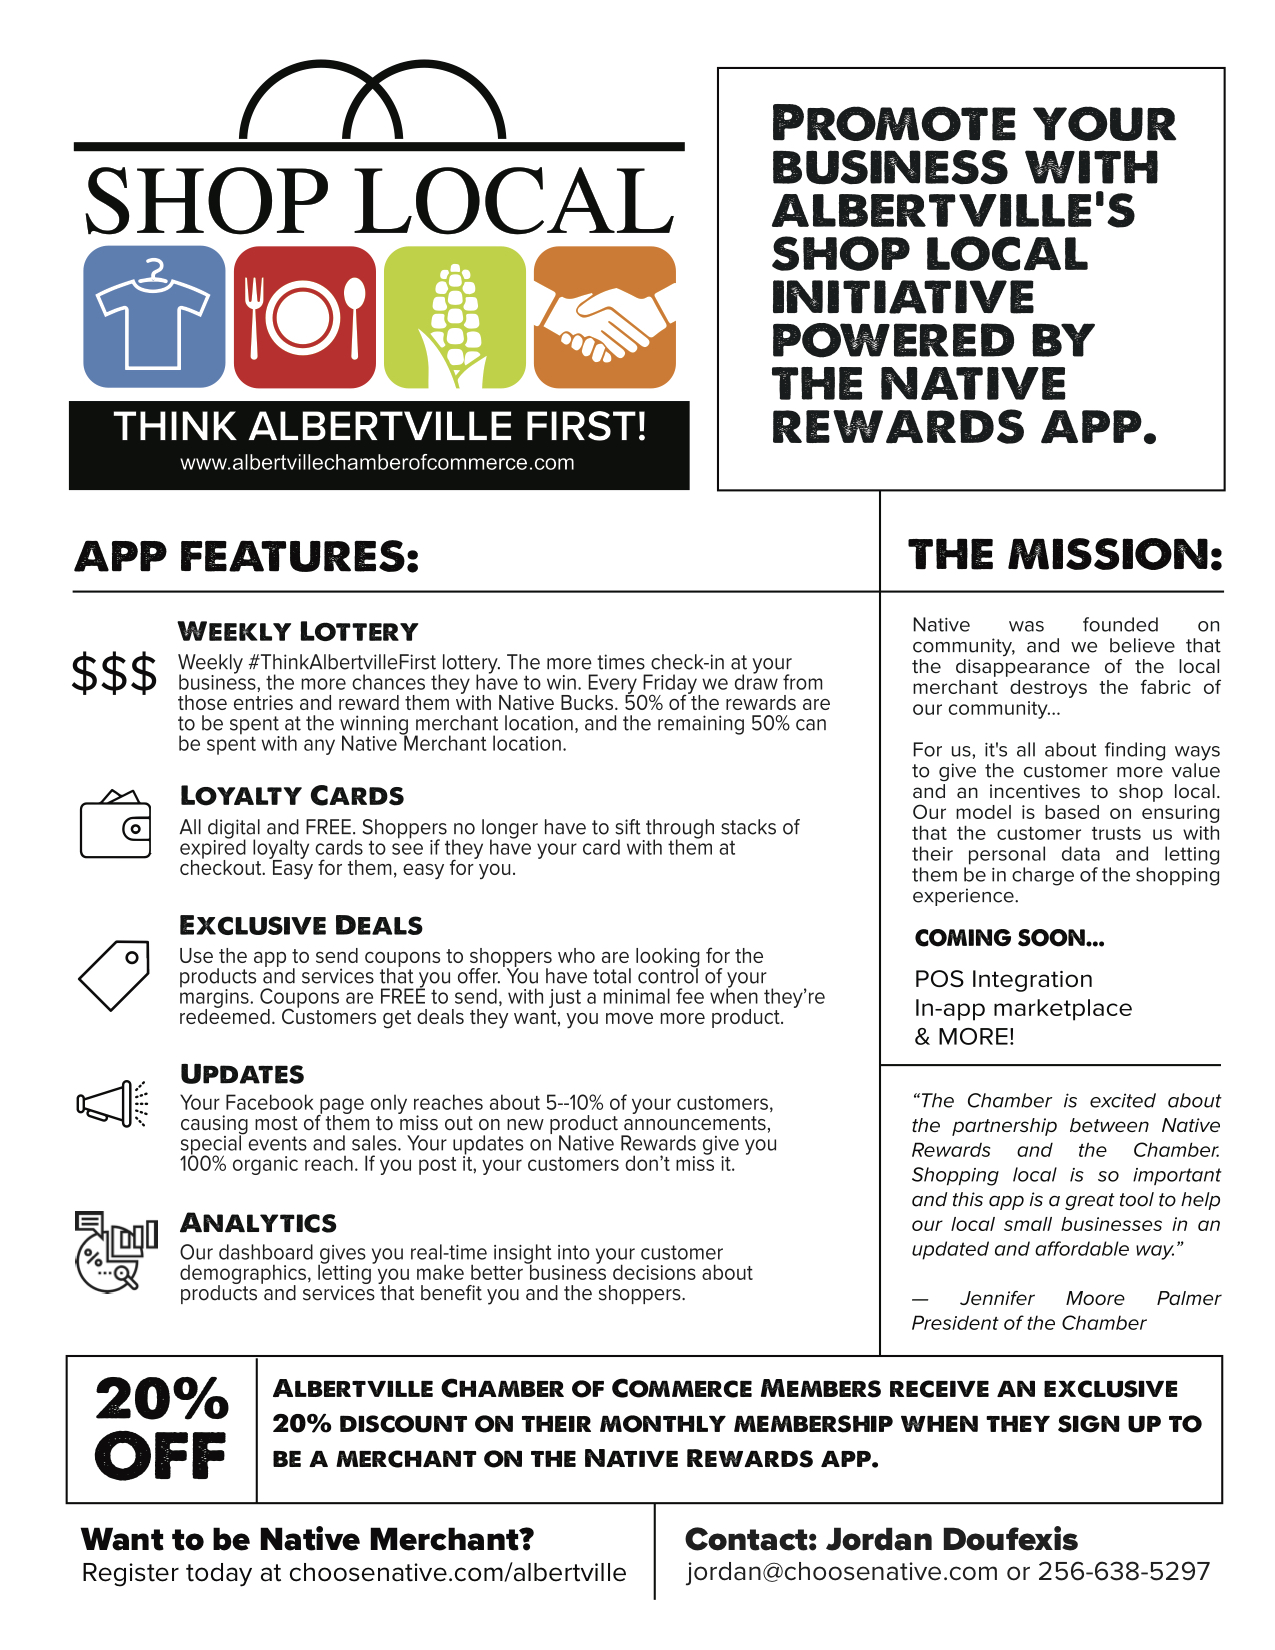 THINK Albertville First - Partners with Native Rewardsl